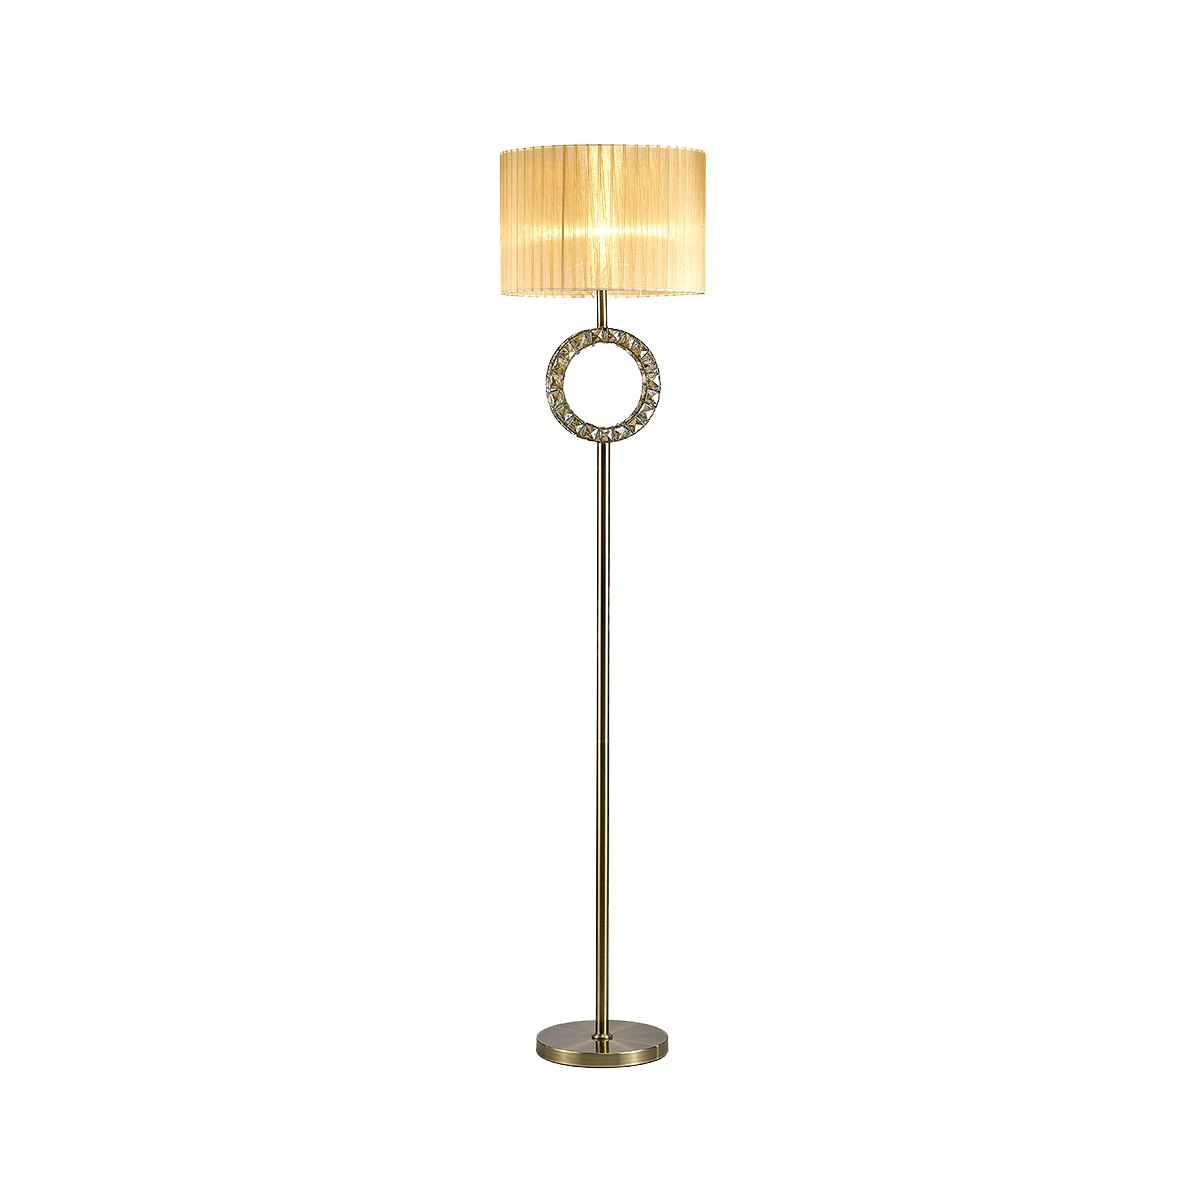 Florence Round Floor Lamp With Soft Bronze Shade 1 Light Antique Brass/Crystal